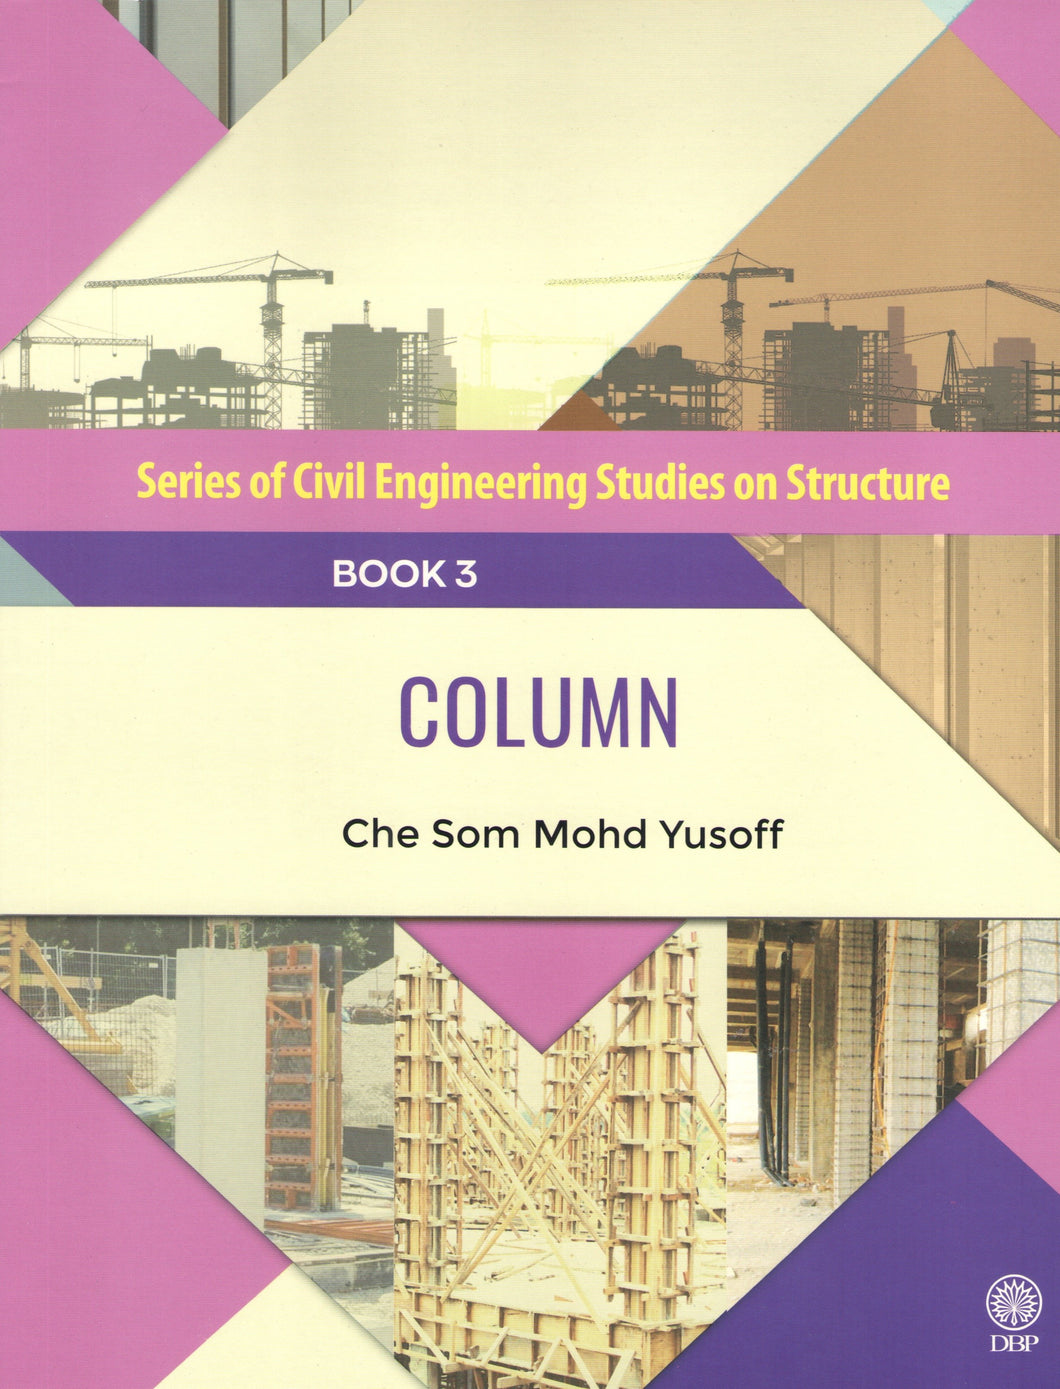 DBP: Series of Civil Engineering Studies on Structure: Book 3 Column